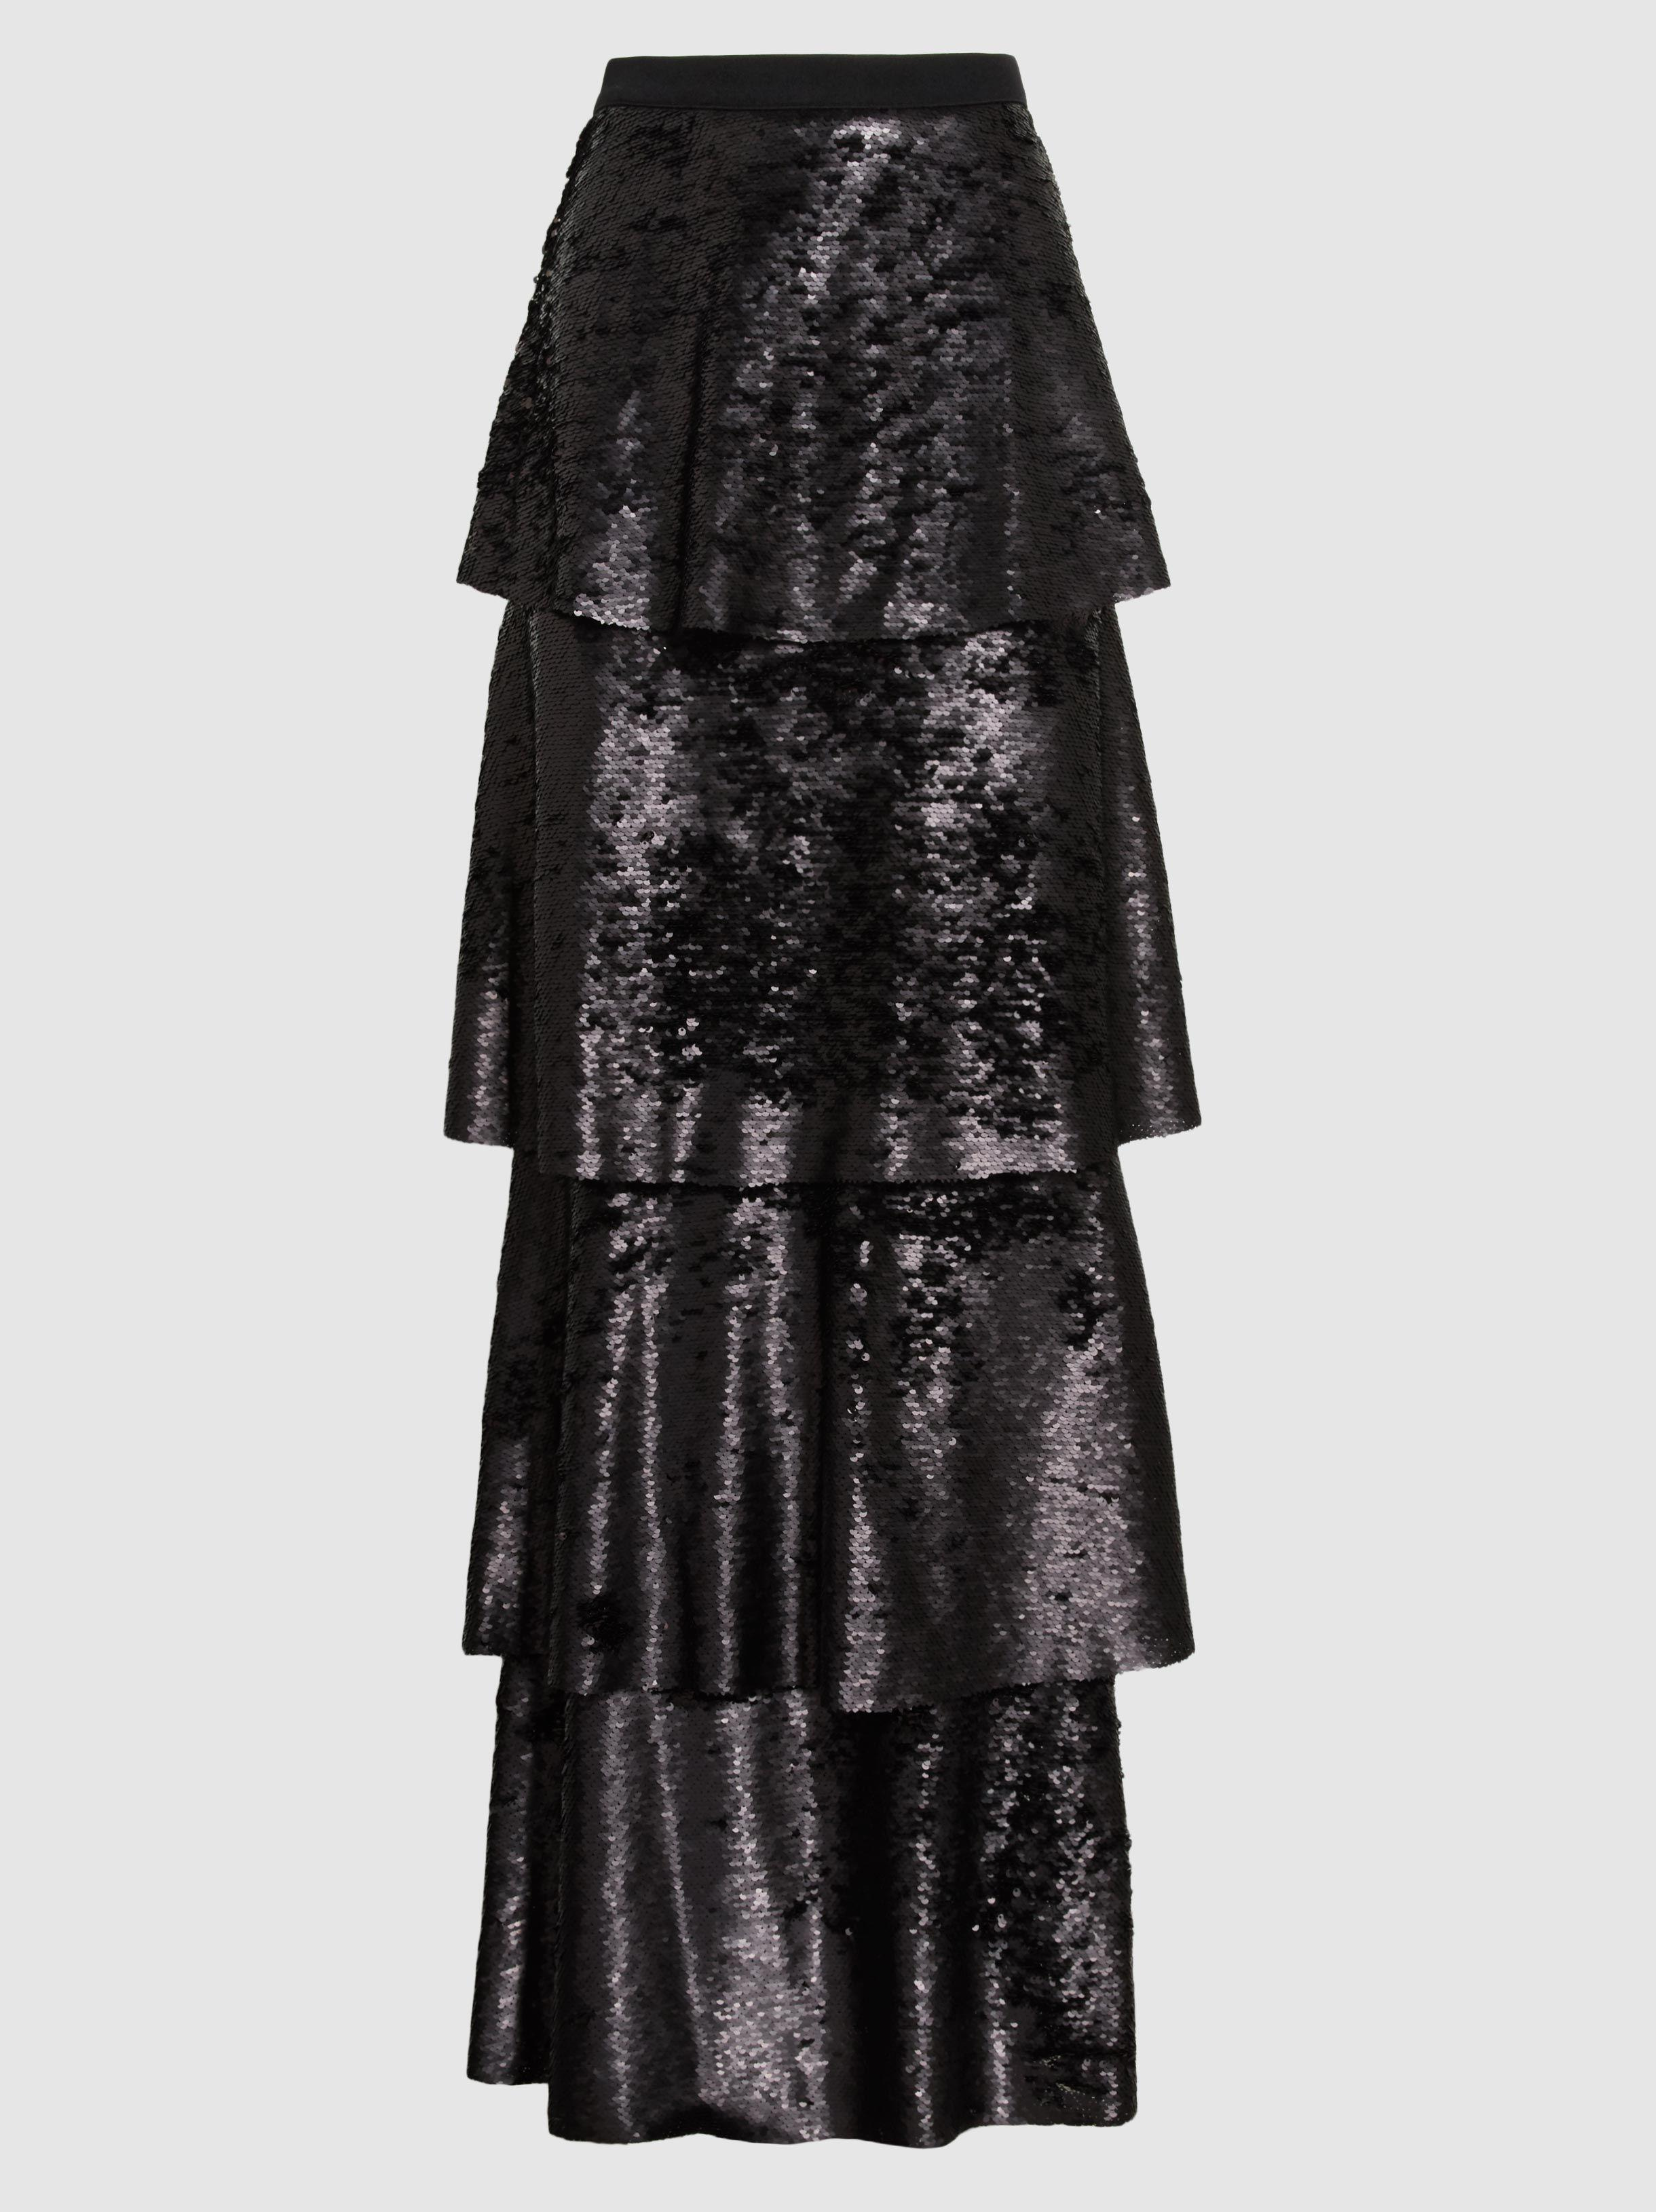 100% Authentic Cheap Online Sale In China Safiyaa Woman Maxi Black Size 40 SAFiYAA Online Get The Latest Fashion BTffxwD